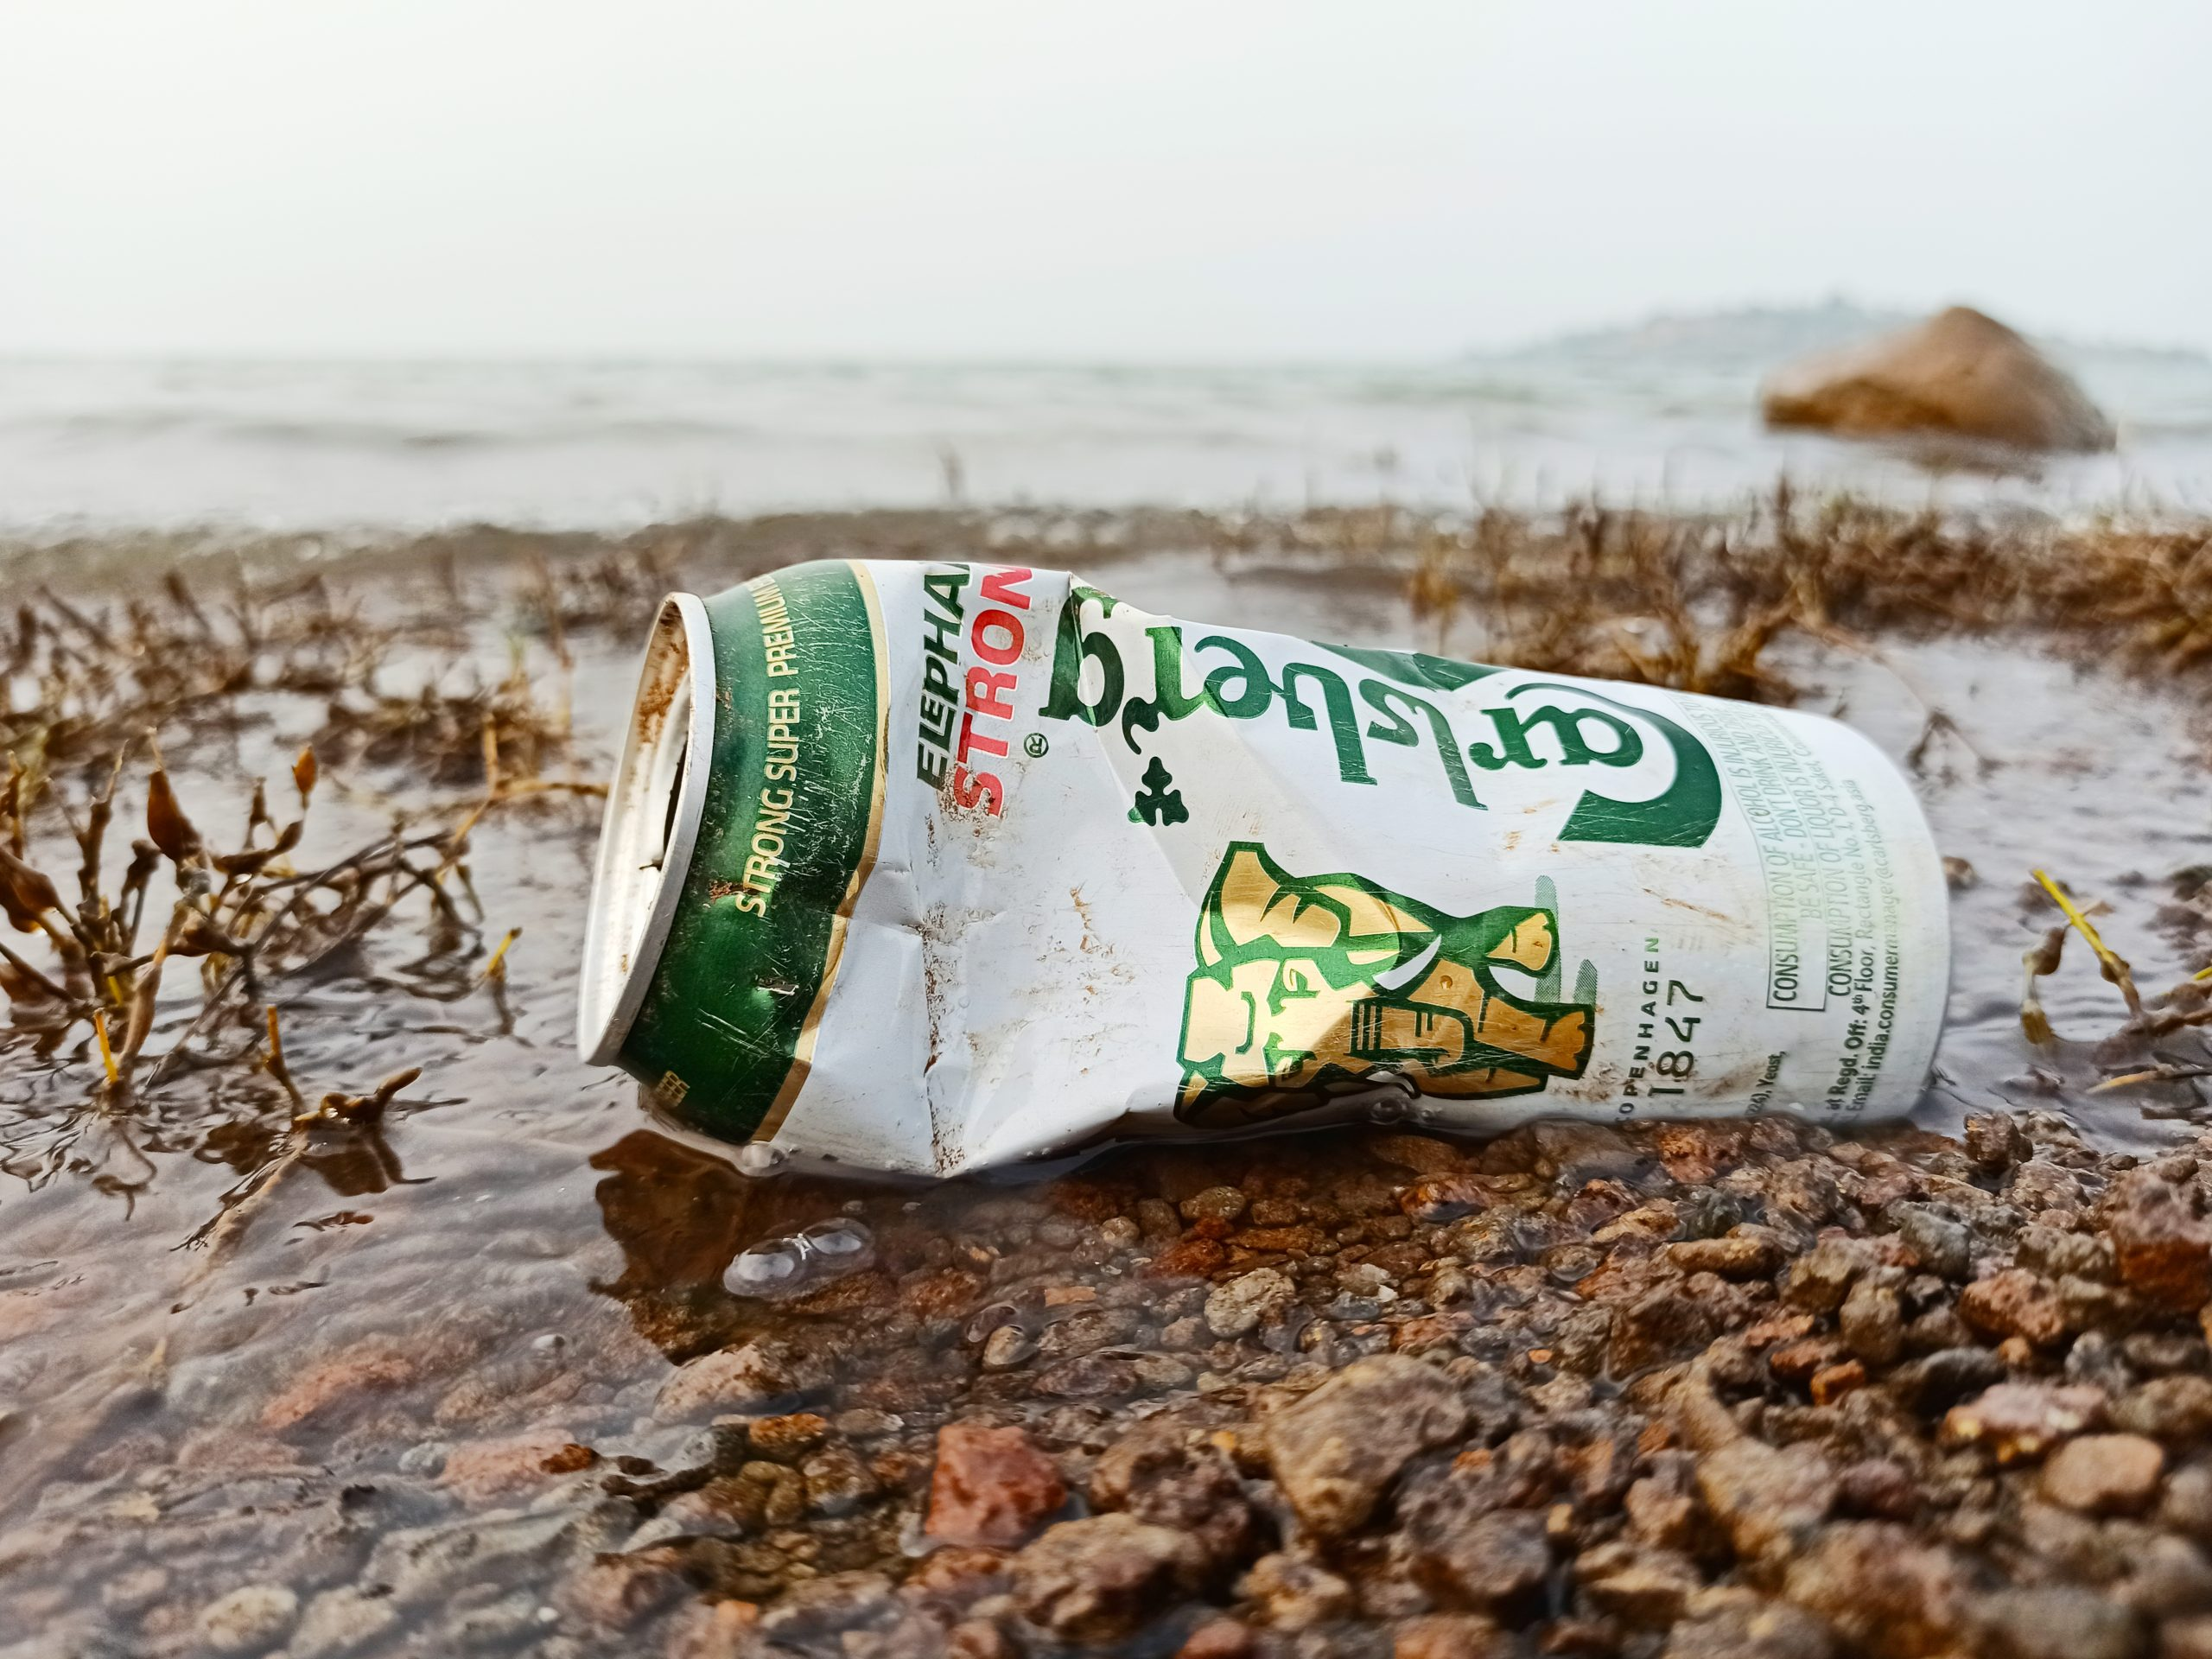 Beer can crushed and thrown on grown